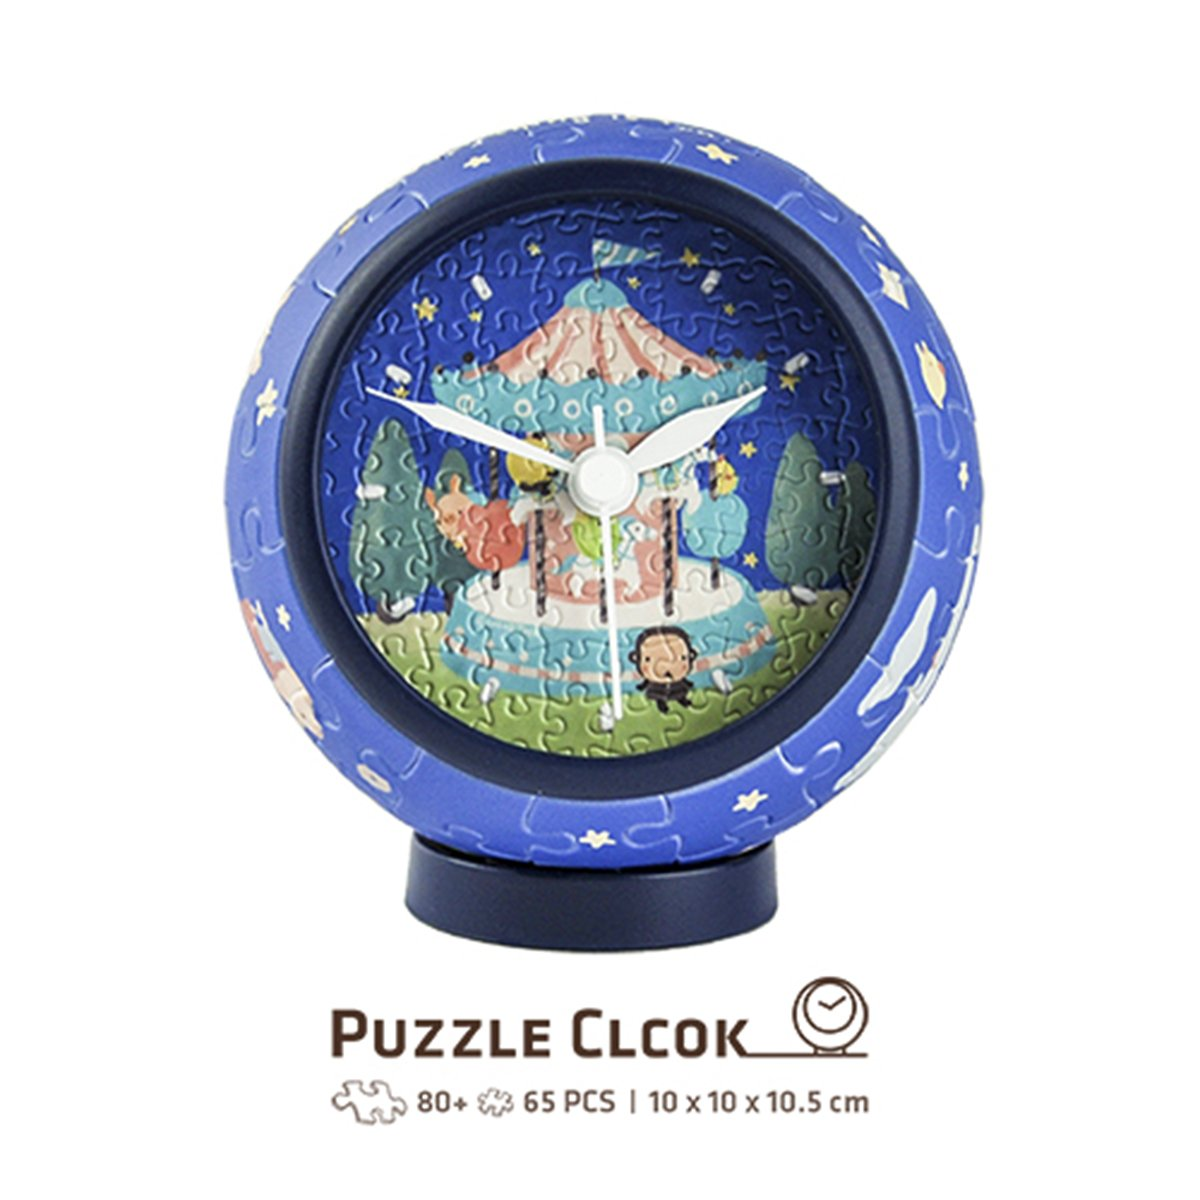 pintoo-3d-puzzle-clock-young-heart-145-teile-puzzle-pintoo-kc1003